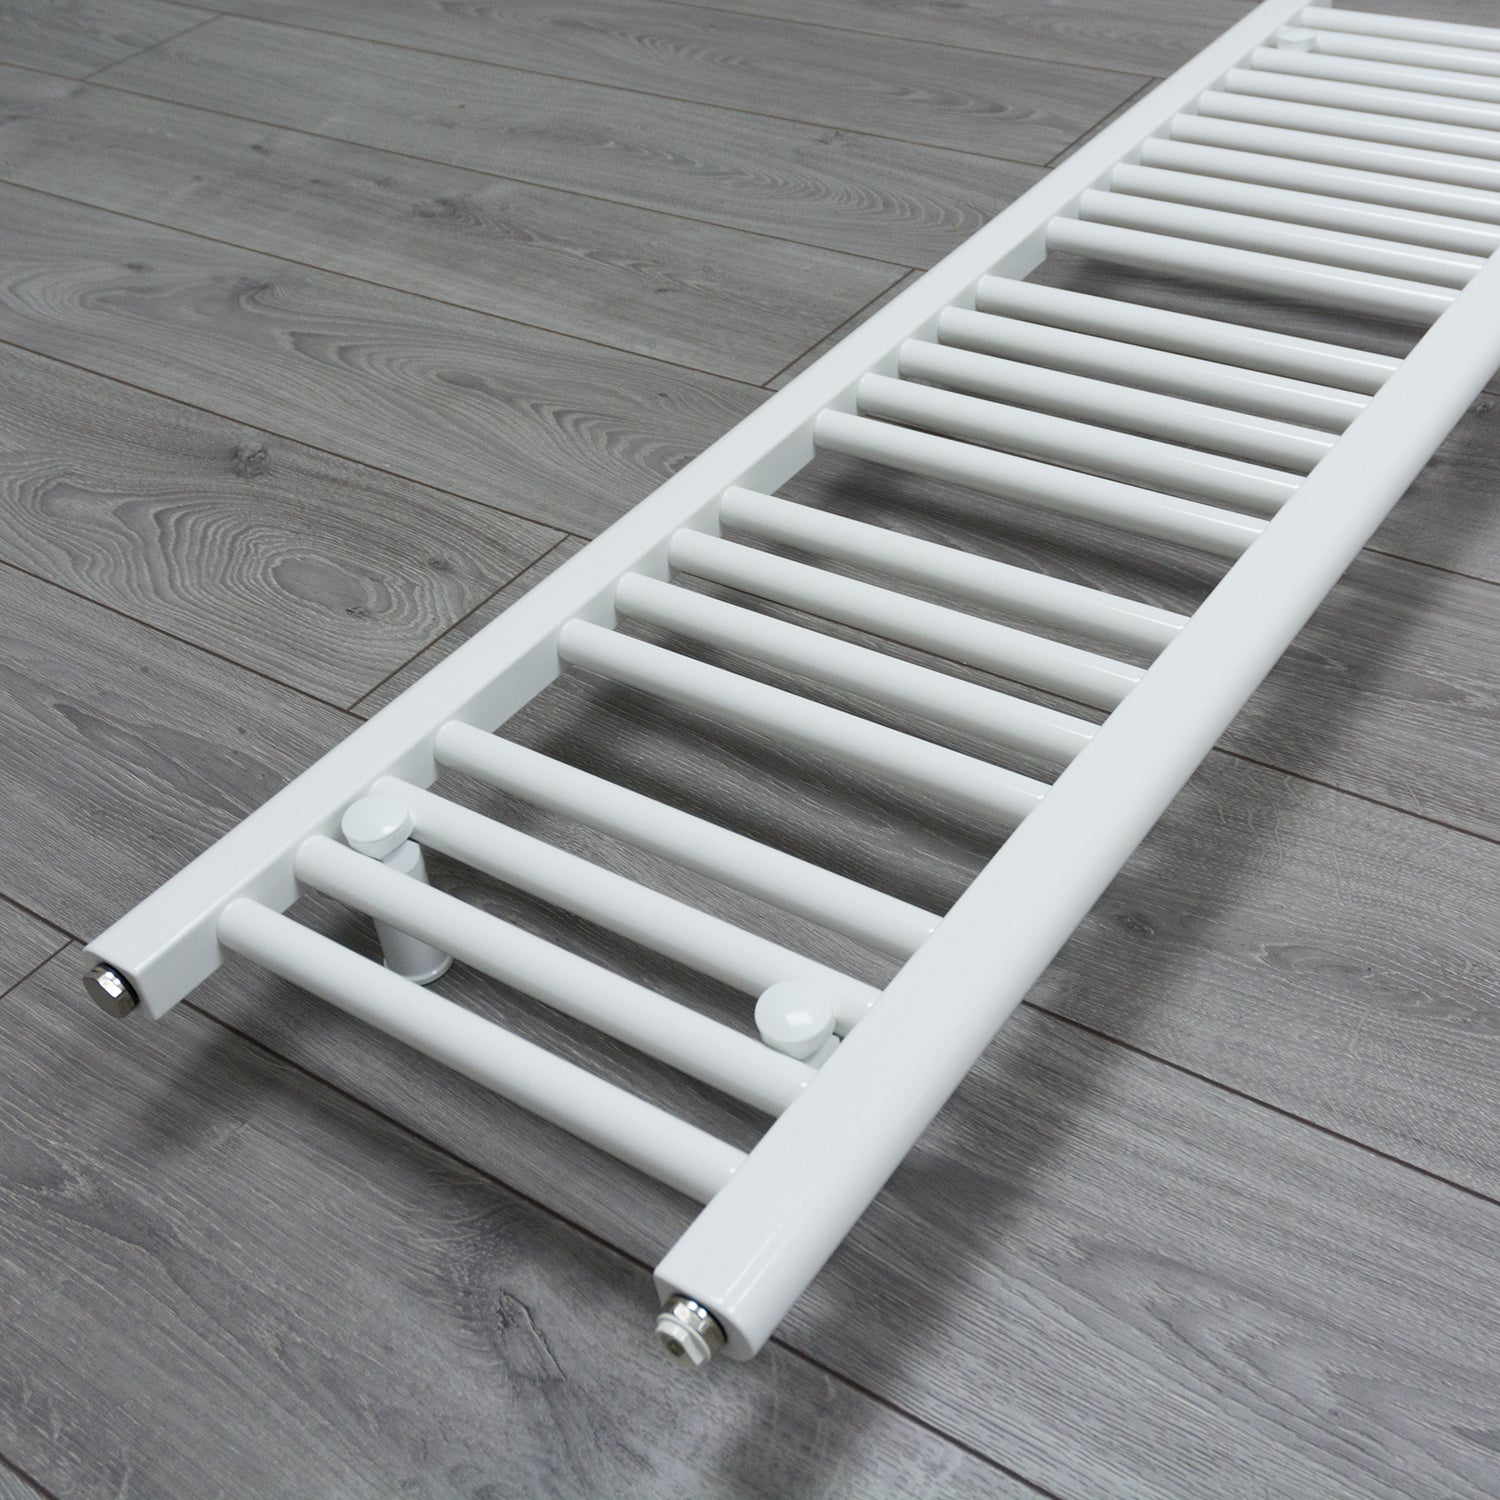 350mm x 400mm White Heated Towel Rail Radiator Close Up Image